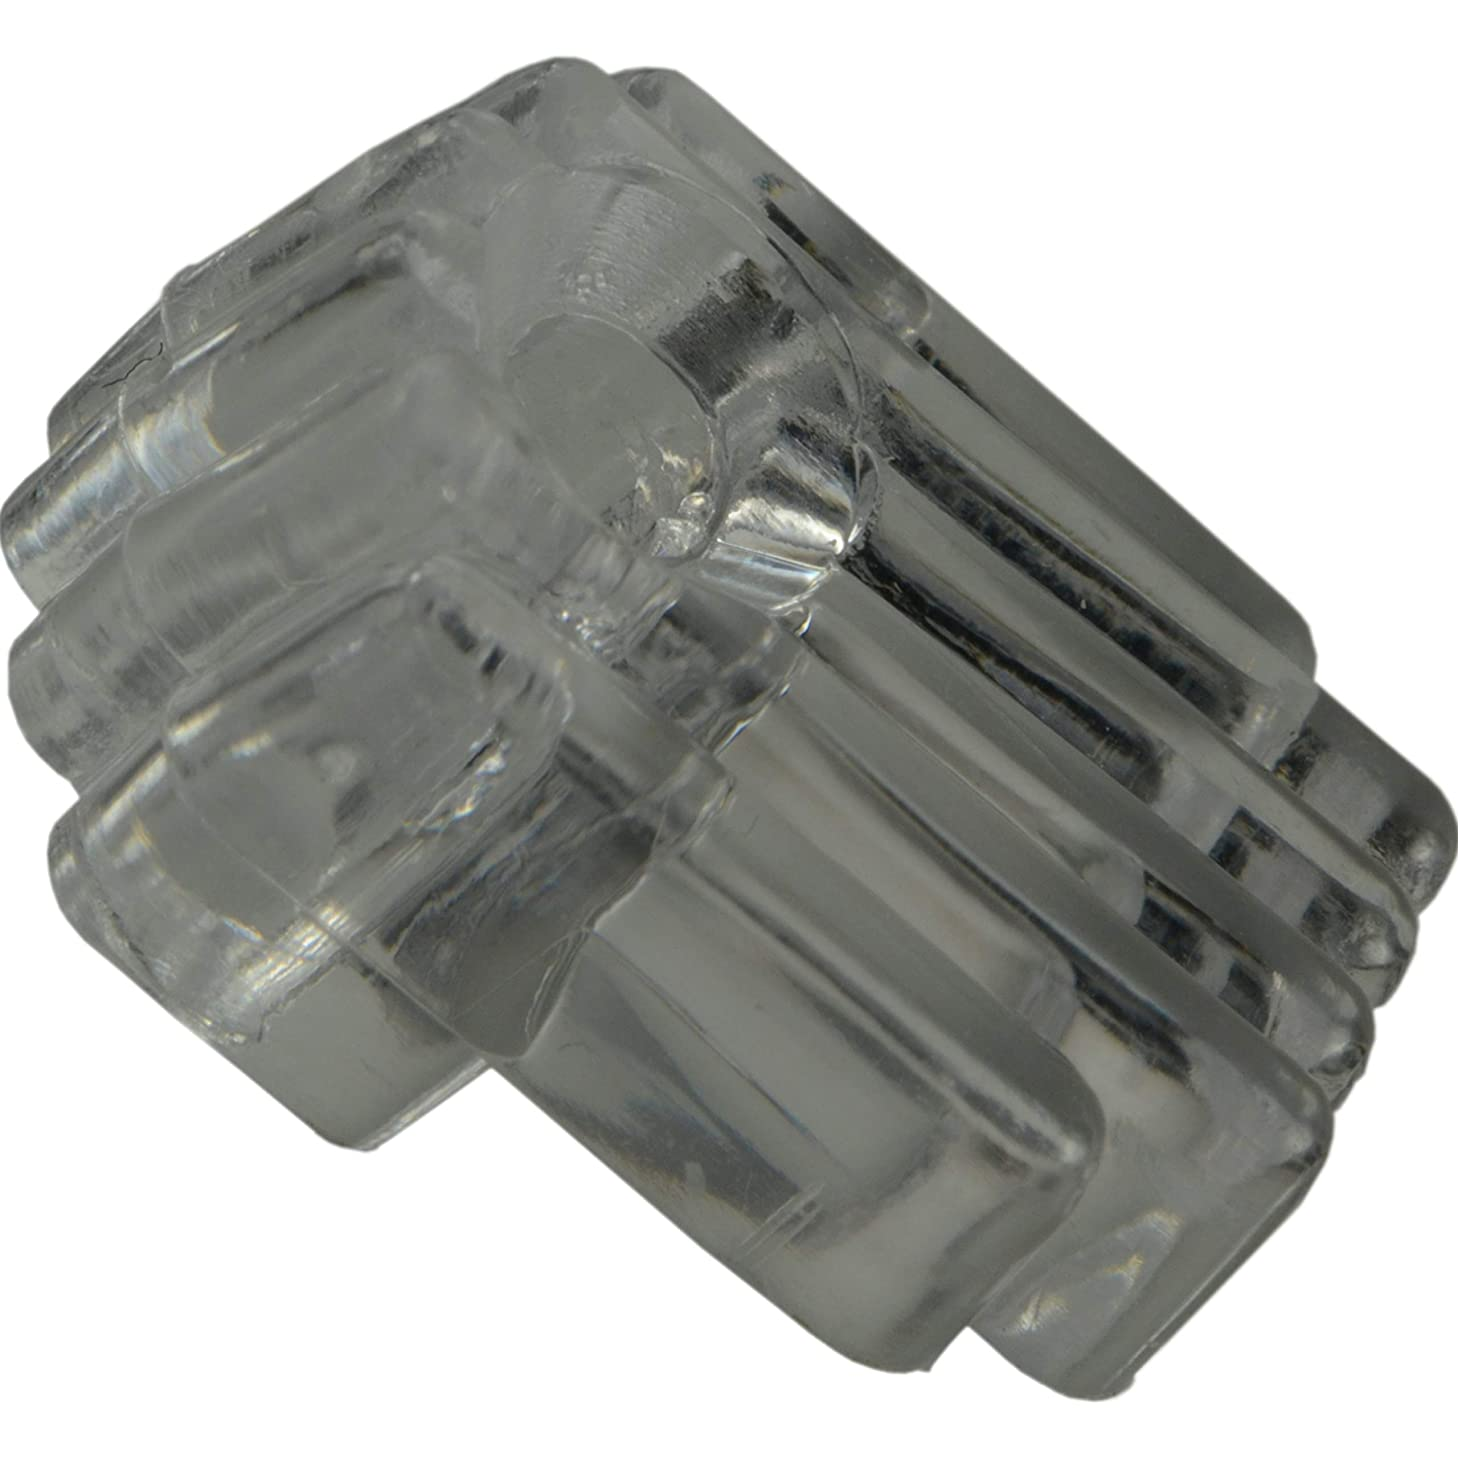 Hard-to-Find Fastener 014973157135 Decorative Mirror Clips for 1/8